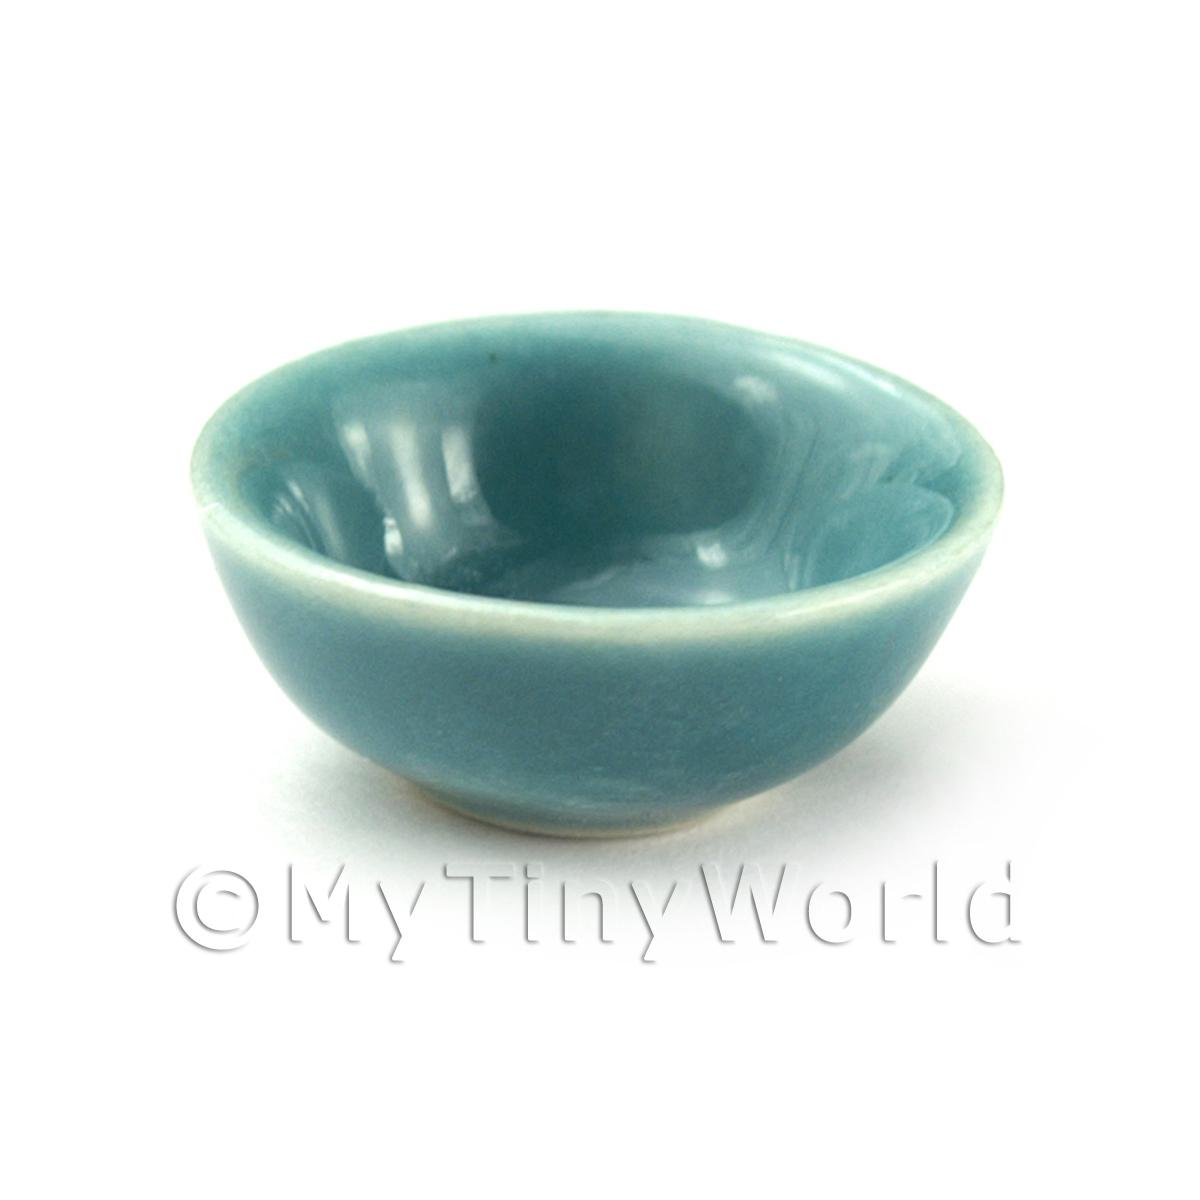 Dolls House Miniature Aquamarine 22mm Ceramic Bowl